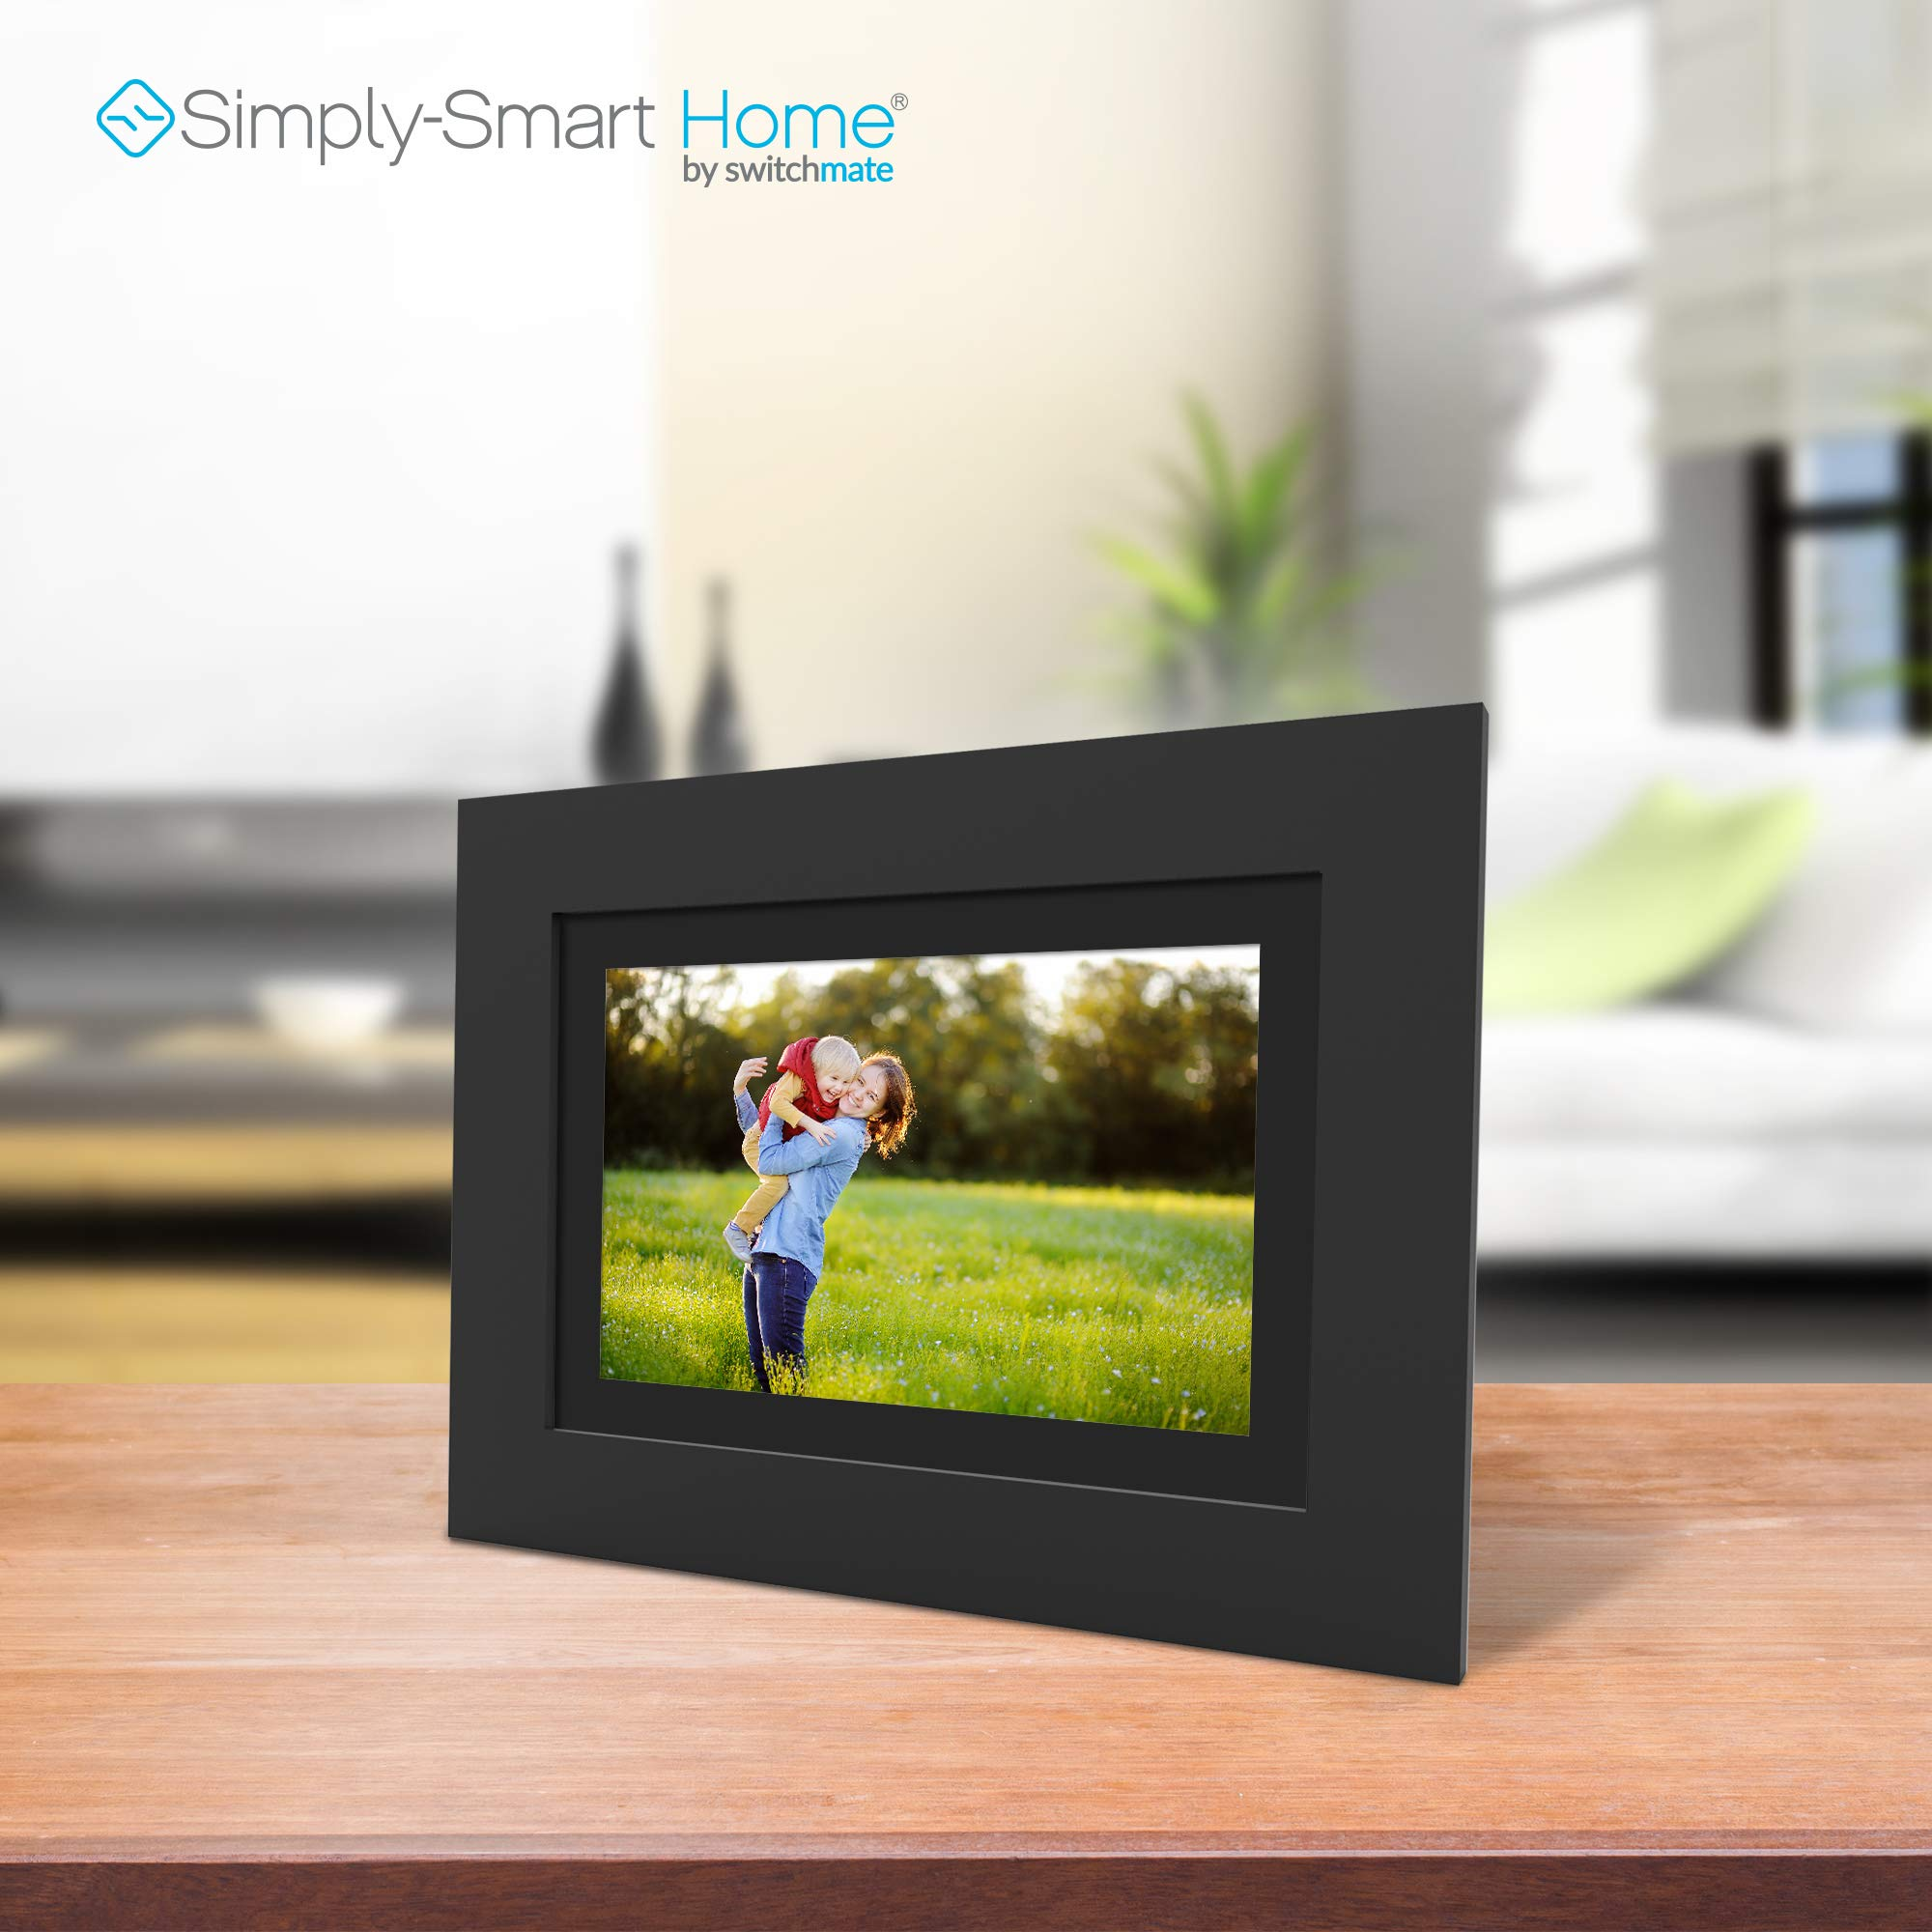 SimplySmart Home PhotoShare Social Network Frame 8'', Send Pics from Phone to Frame, Wi-Fi, Cloud, Digital Picture Frame, Holds Over 1,000 Photos, HD, 1080P, Black/White Mats by Switchmate (Image #5)